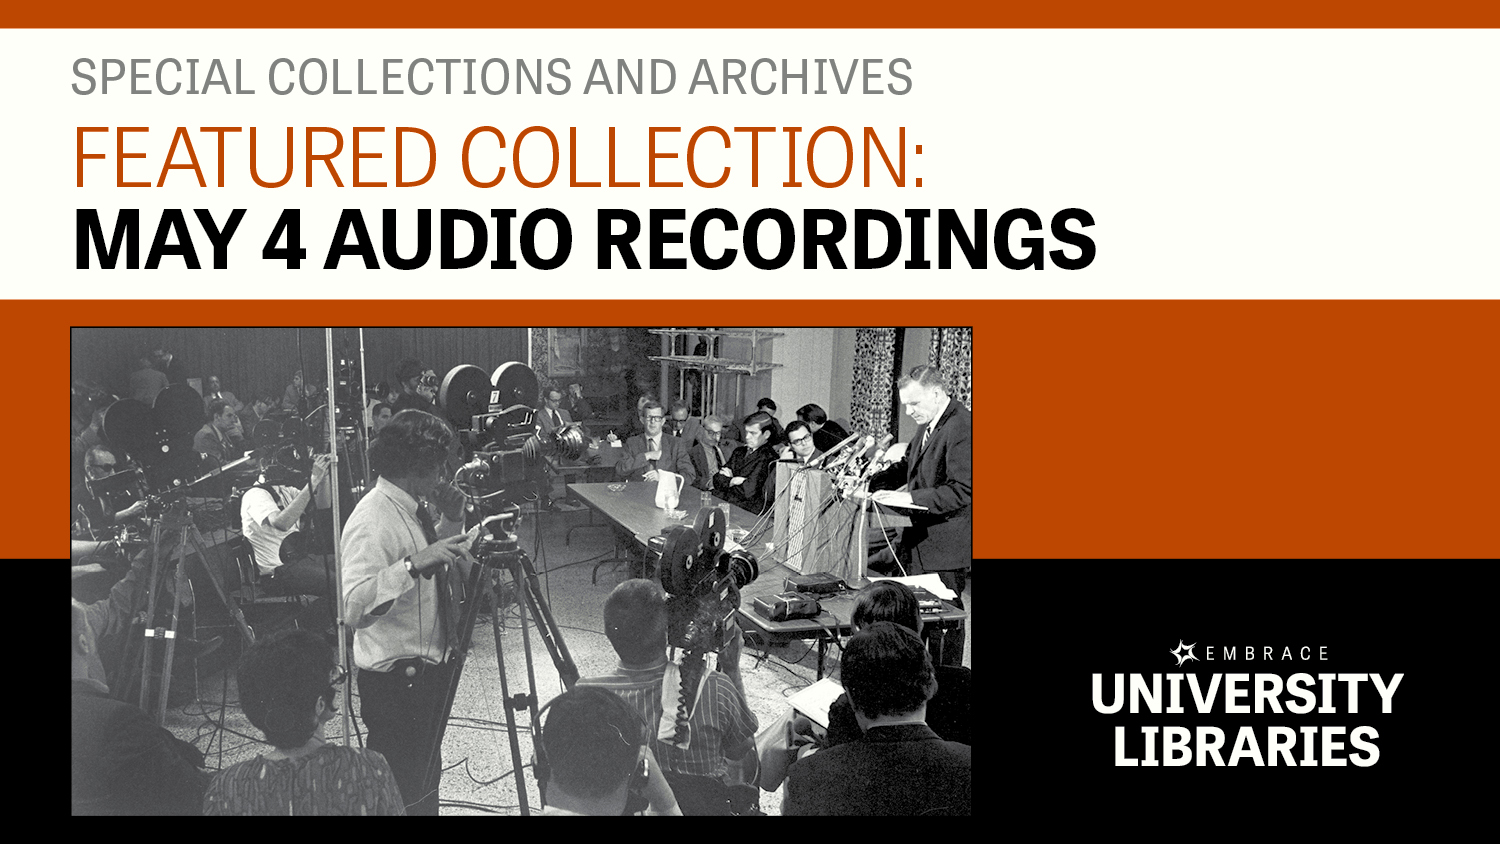 Show more about 80 audio recordings related to the Kent State shootings have recently been digitized and are now available online.